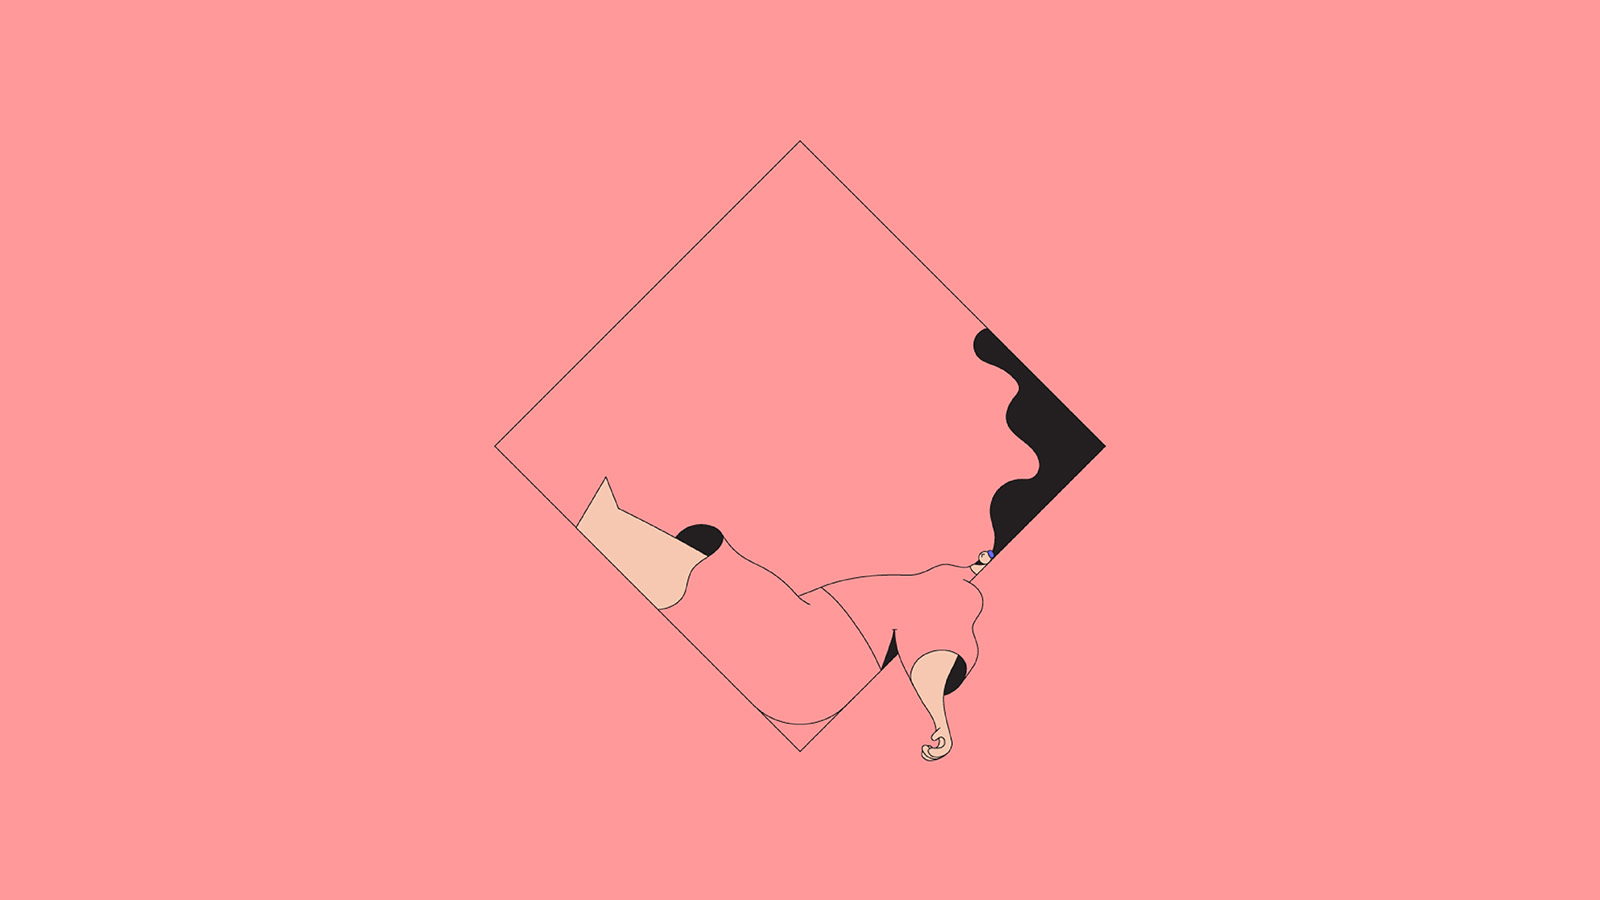 Fall Wallpaper For Laptop Bb08 Minimal Drawing Pink Illustration Art Wallpaper